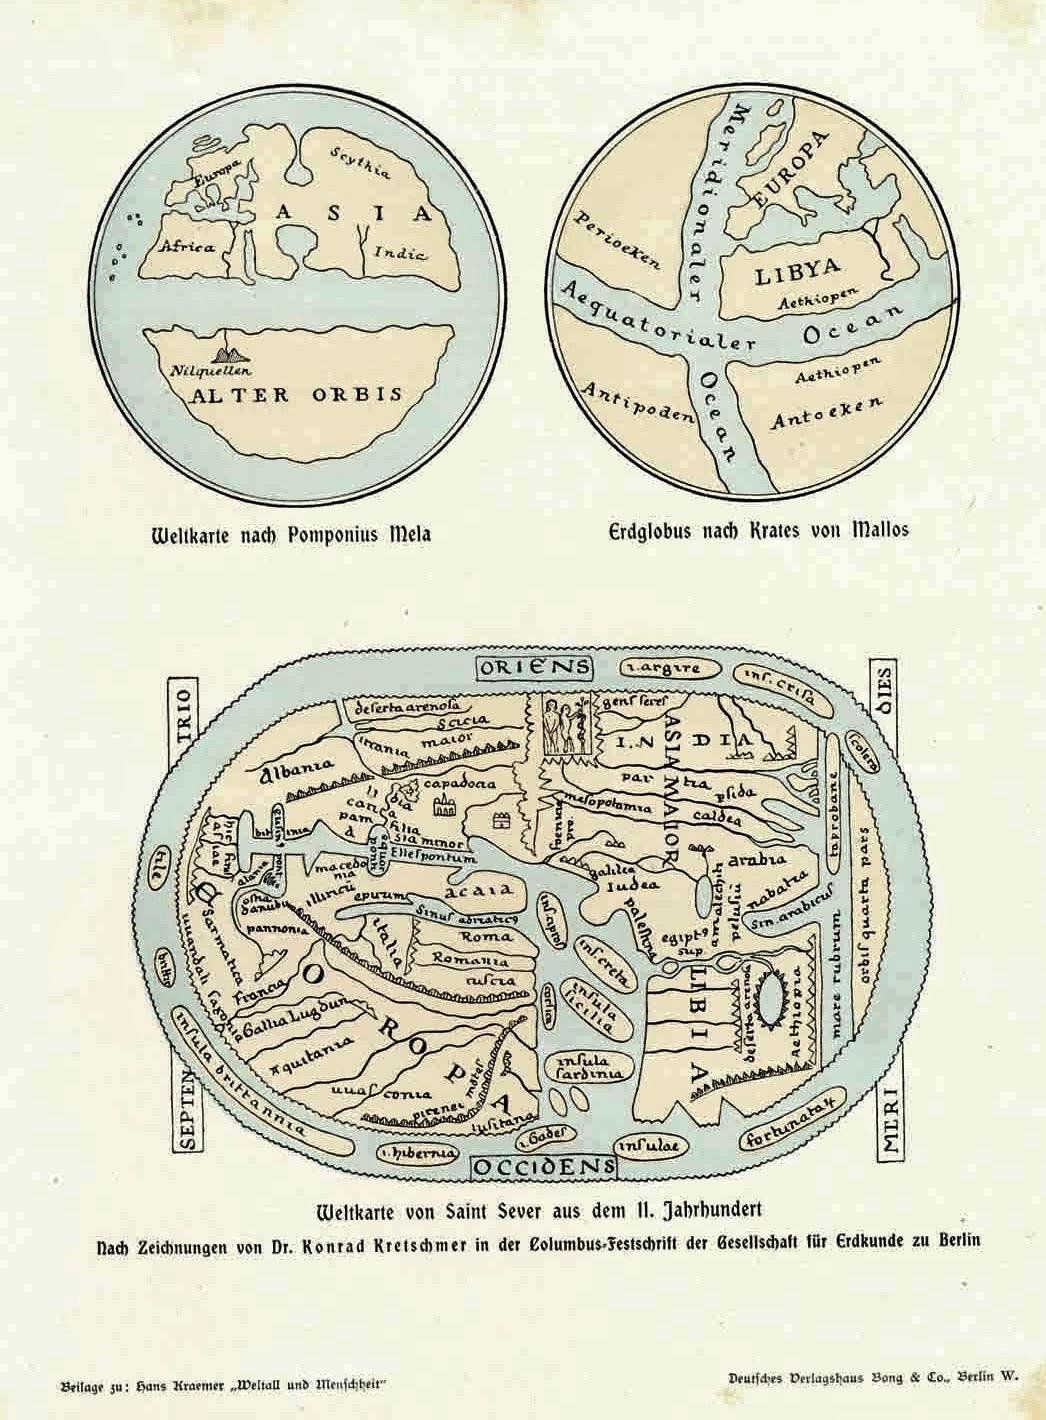 """Weltkarte von Saint Sever aus dem 11. Jahrhundert""  Wood engravings made after the drawings by Dr. Konrad Kretschmer of ancient maps. Published 1900."